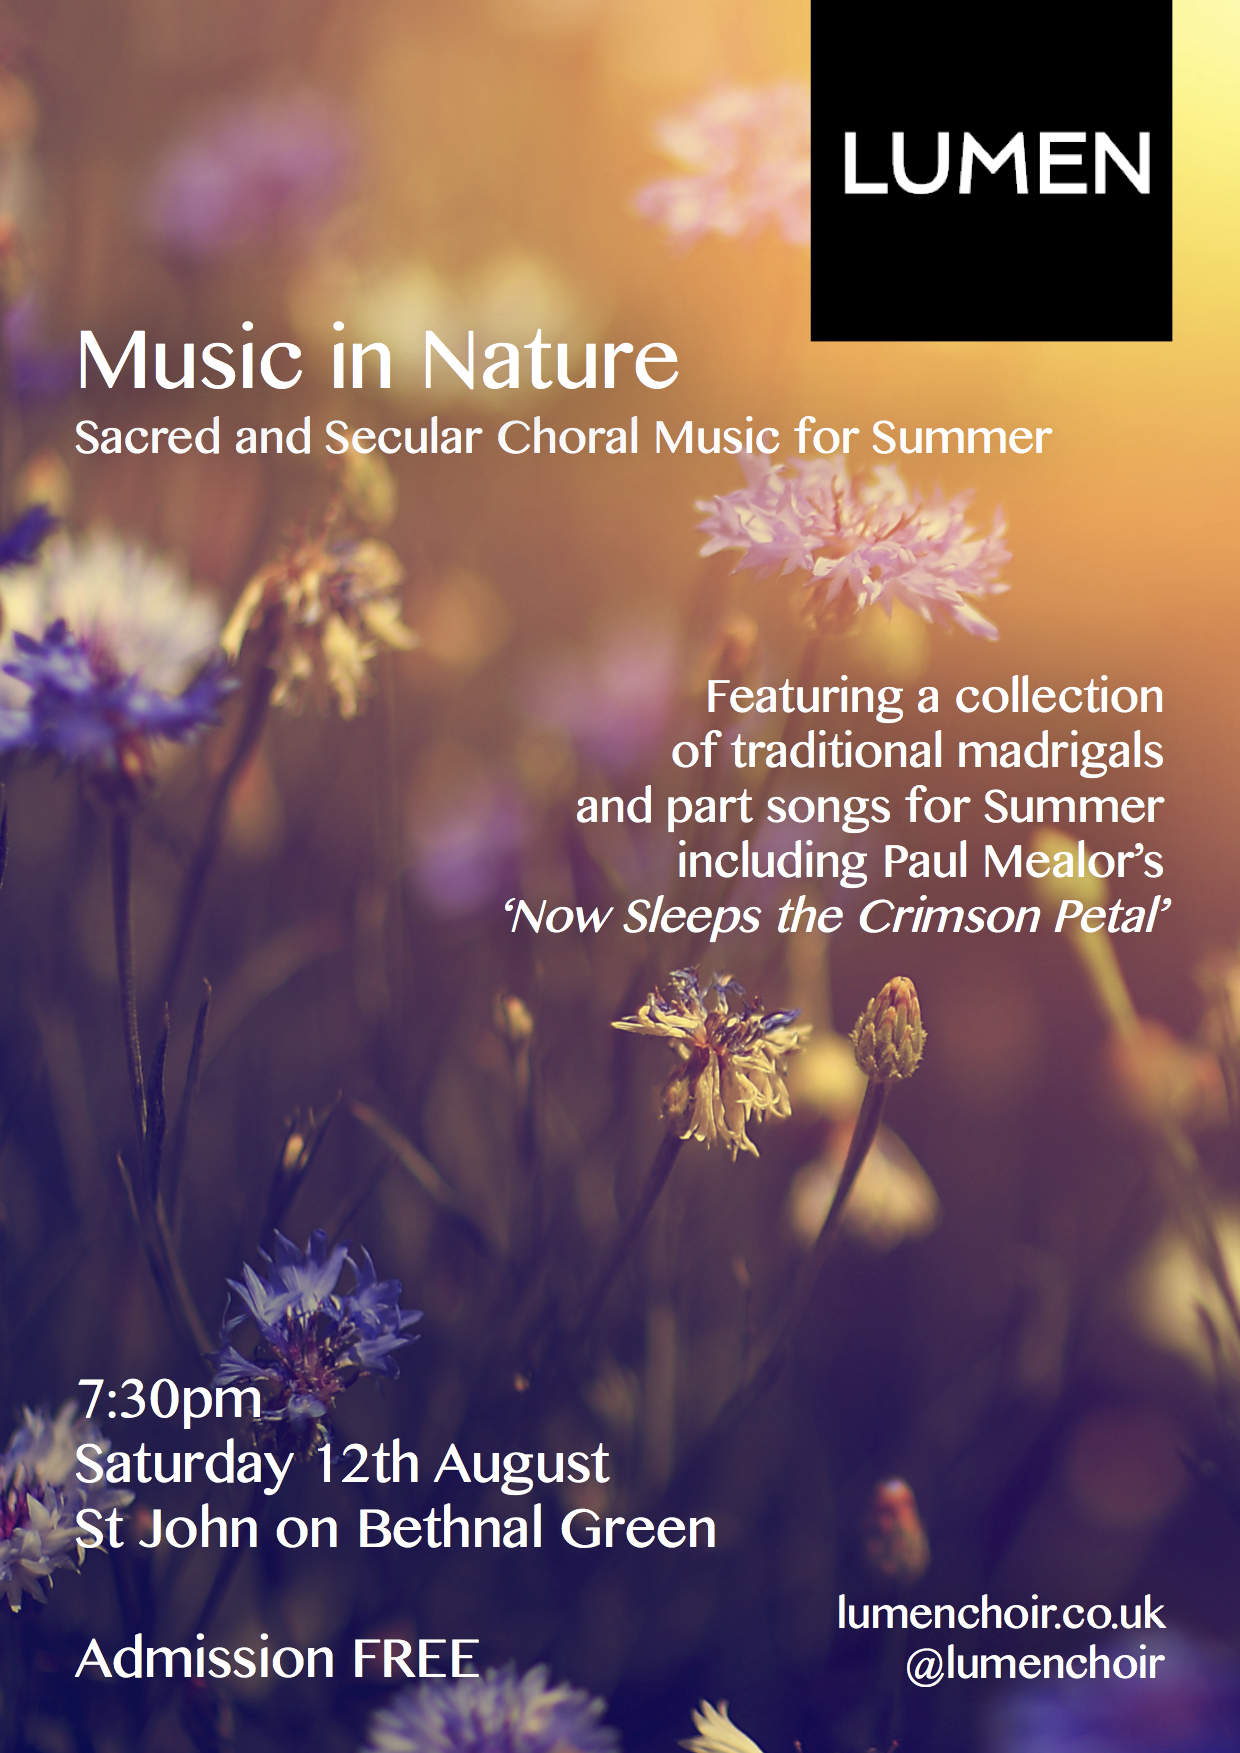 Music in Nature: Sacred and Secular Choral Music for Summer